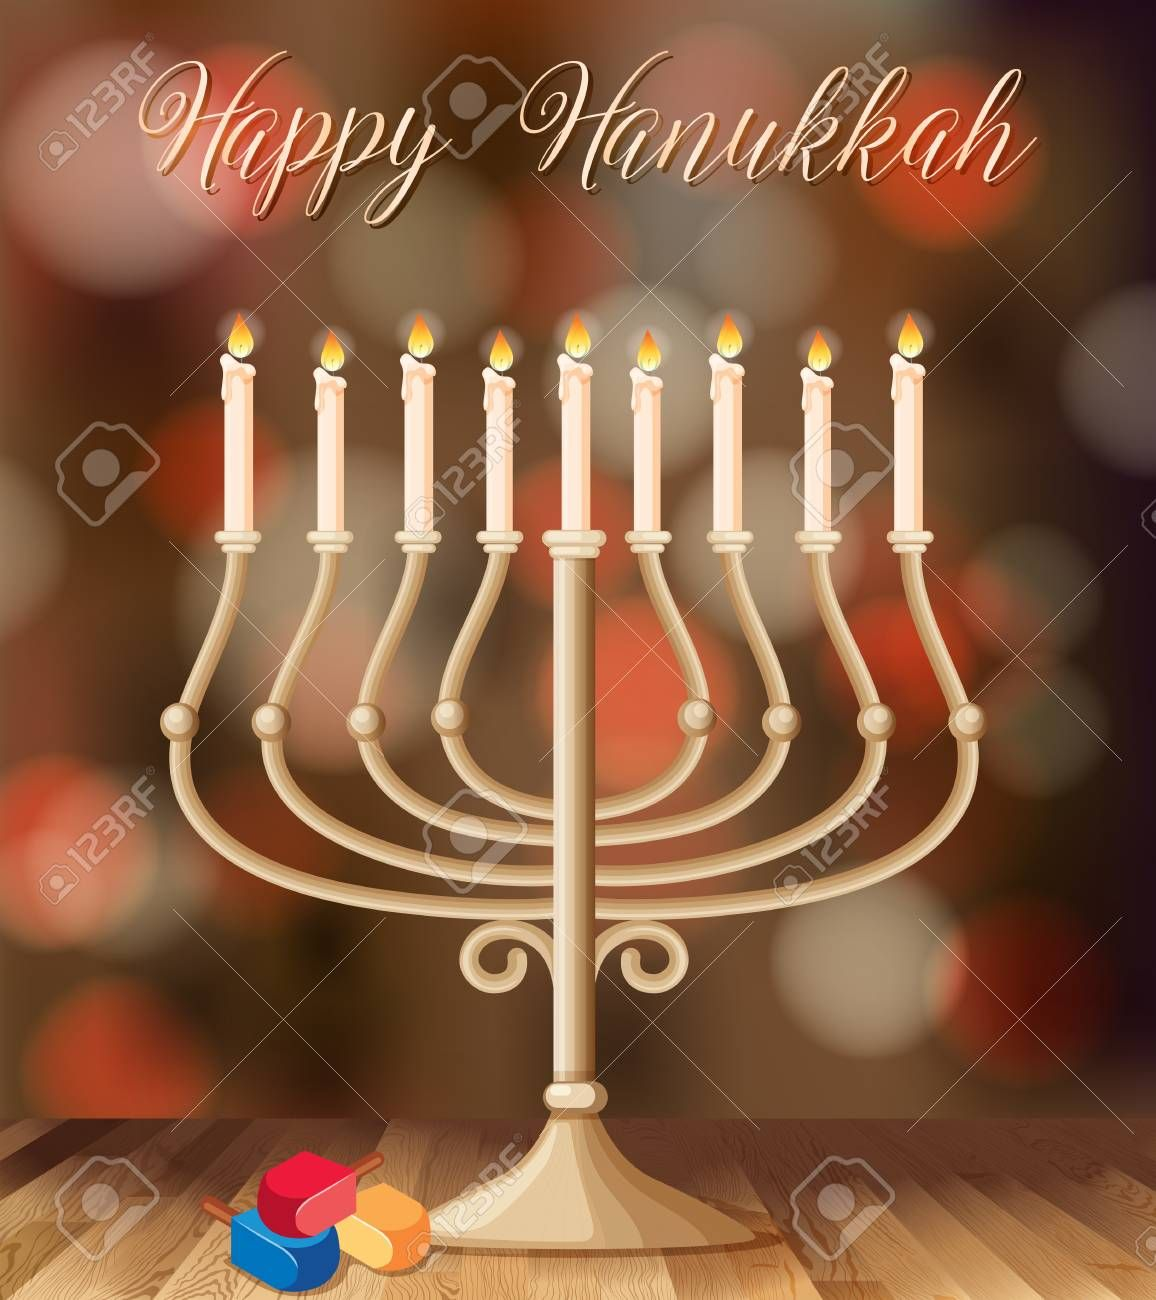 Happy Hanukkah Card Template With Candleholder With Lights Illustration Illustration Ad Card Template Happy Ha Happy Hanukkah Hanukkah Card Template